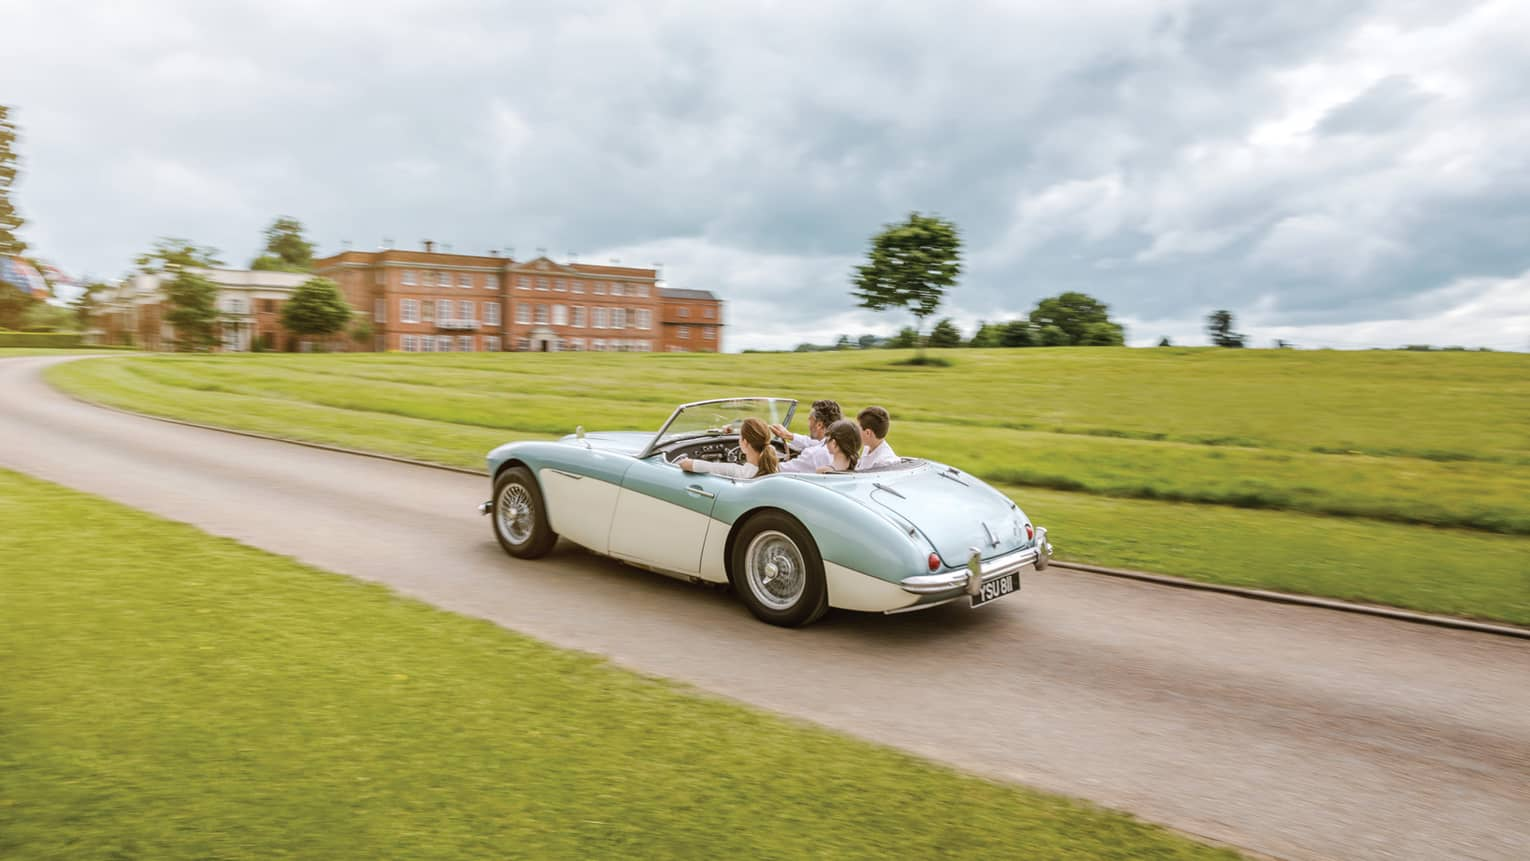 Family rides in vintage convertible car down road past English countryside to hotel manor